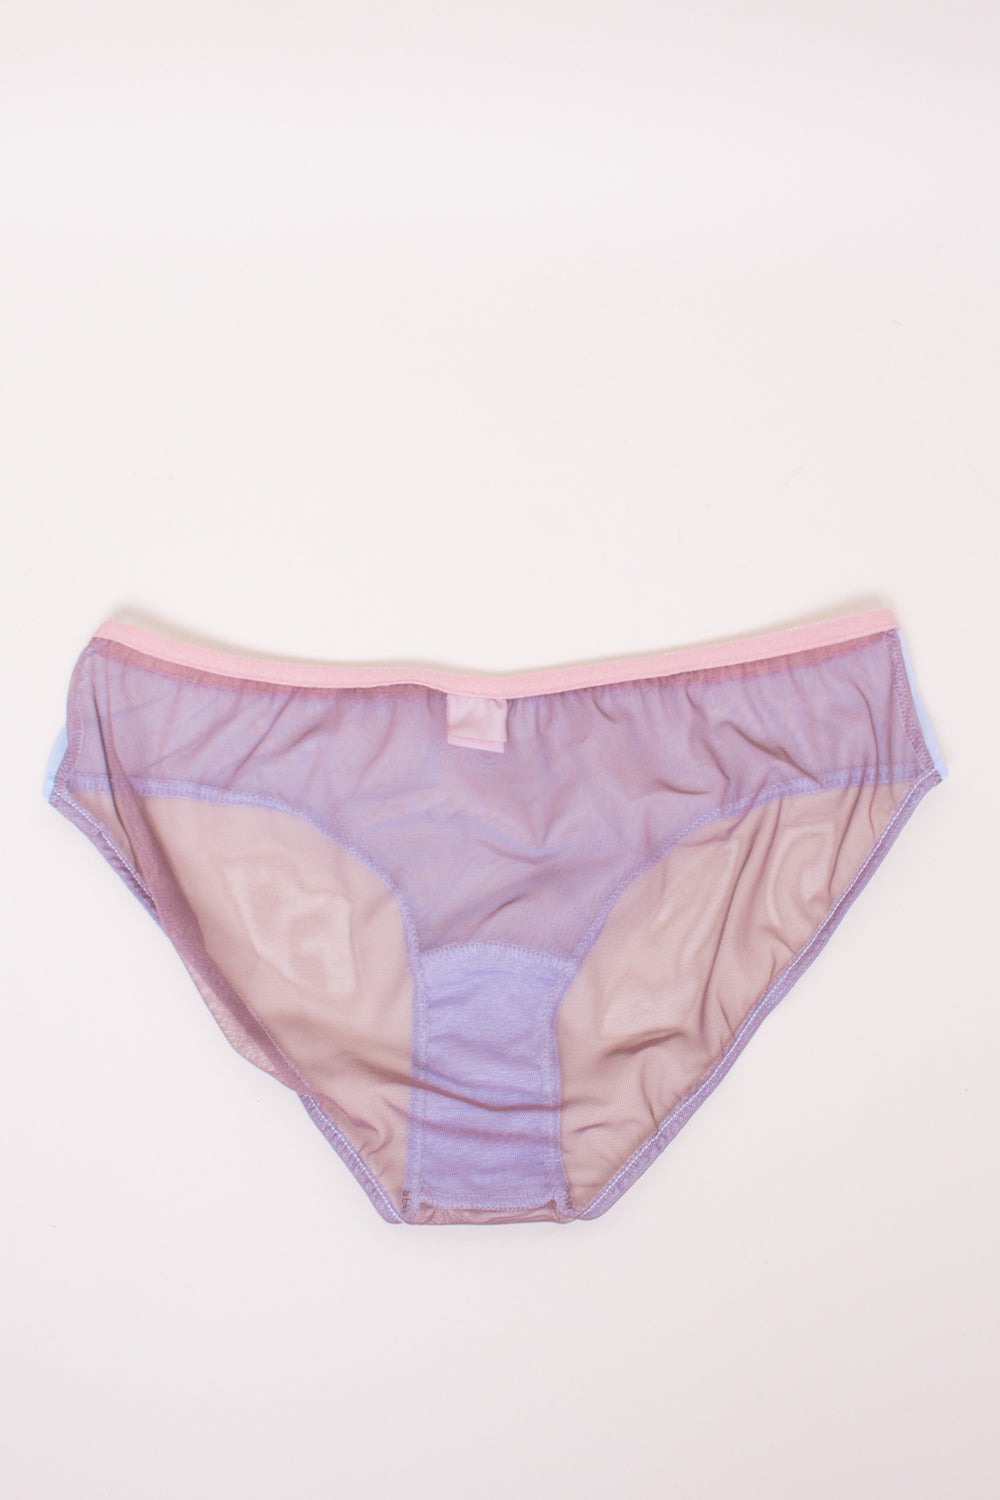 Only Hearts Whisper Colorblock French Brief in Powder Room - Vert & Vogue